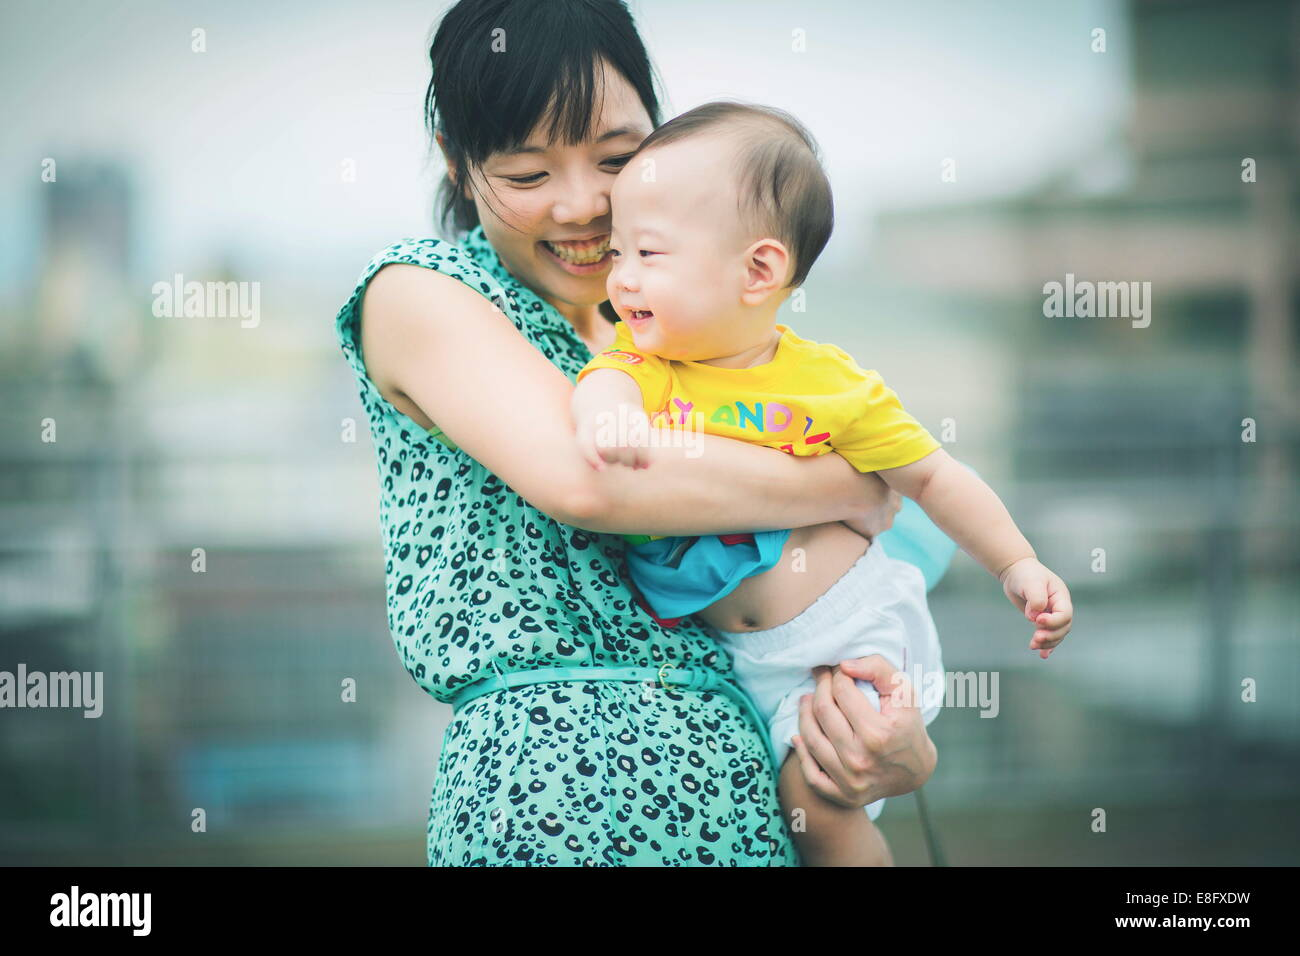 Mother holding son while dancing - Stock Image